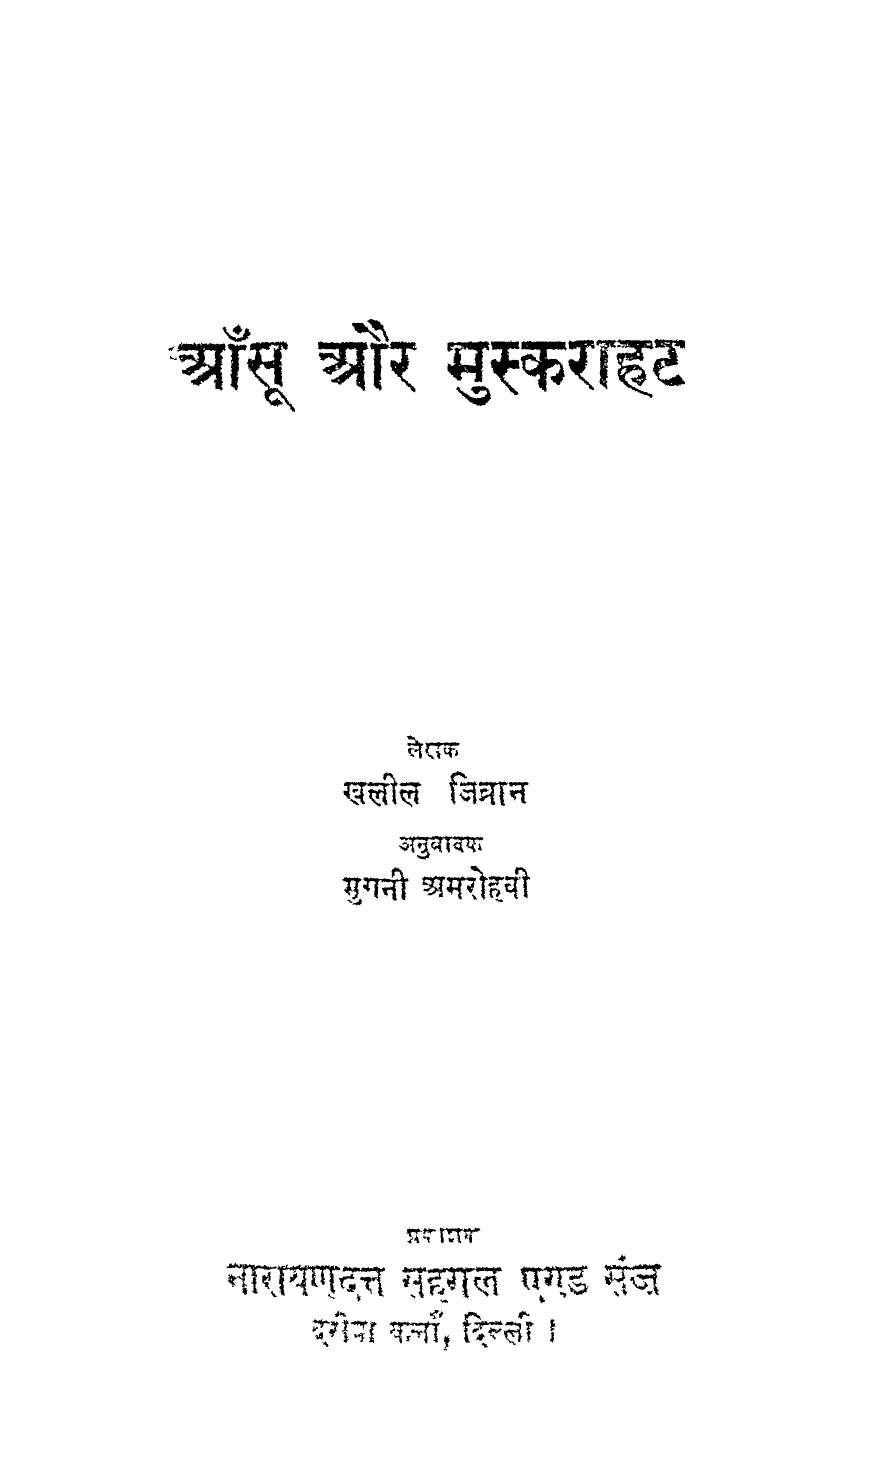 K. Gibran, Aansoo Aur Muskaan (a selection of stories translated into Hindi), [publication date unknown].